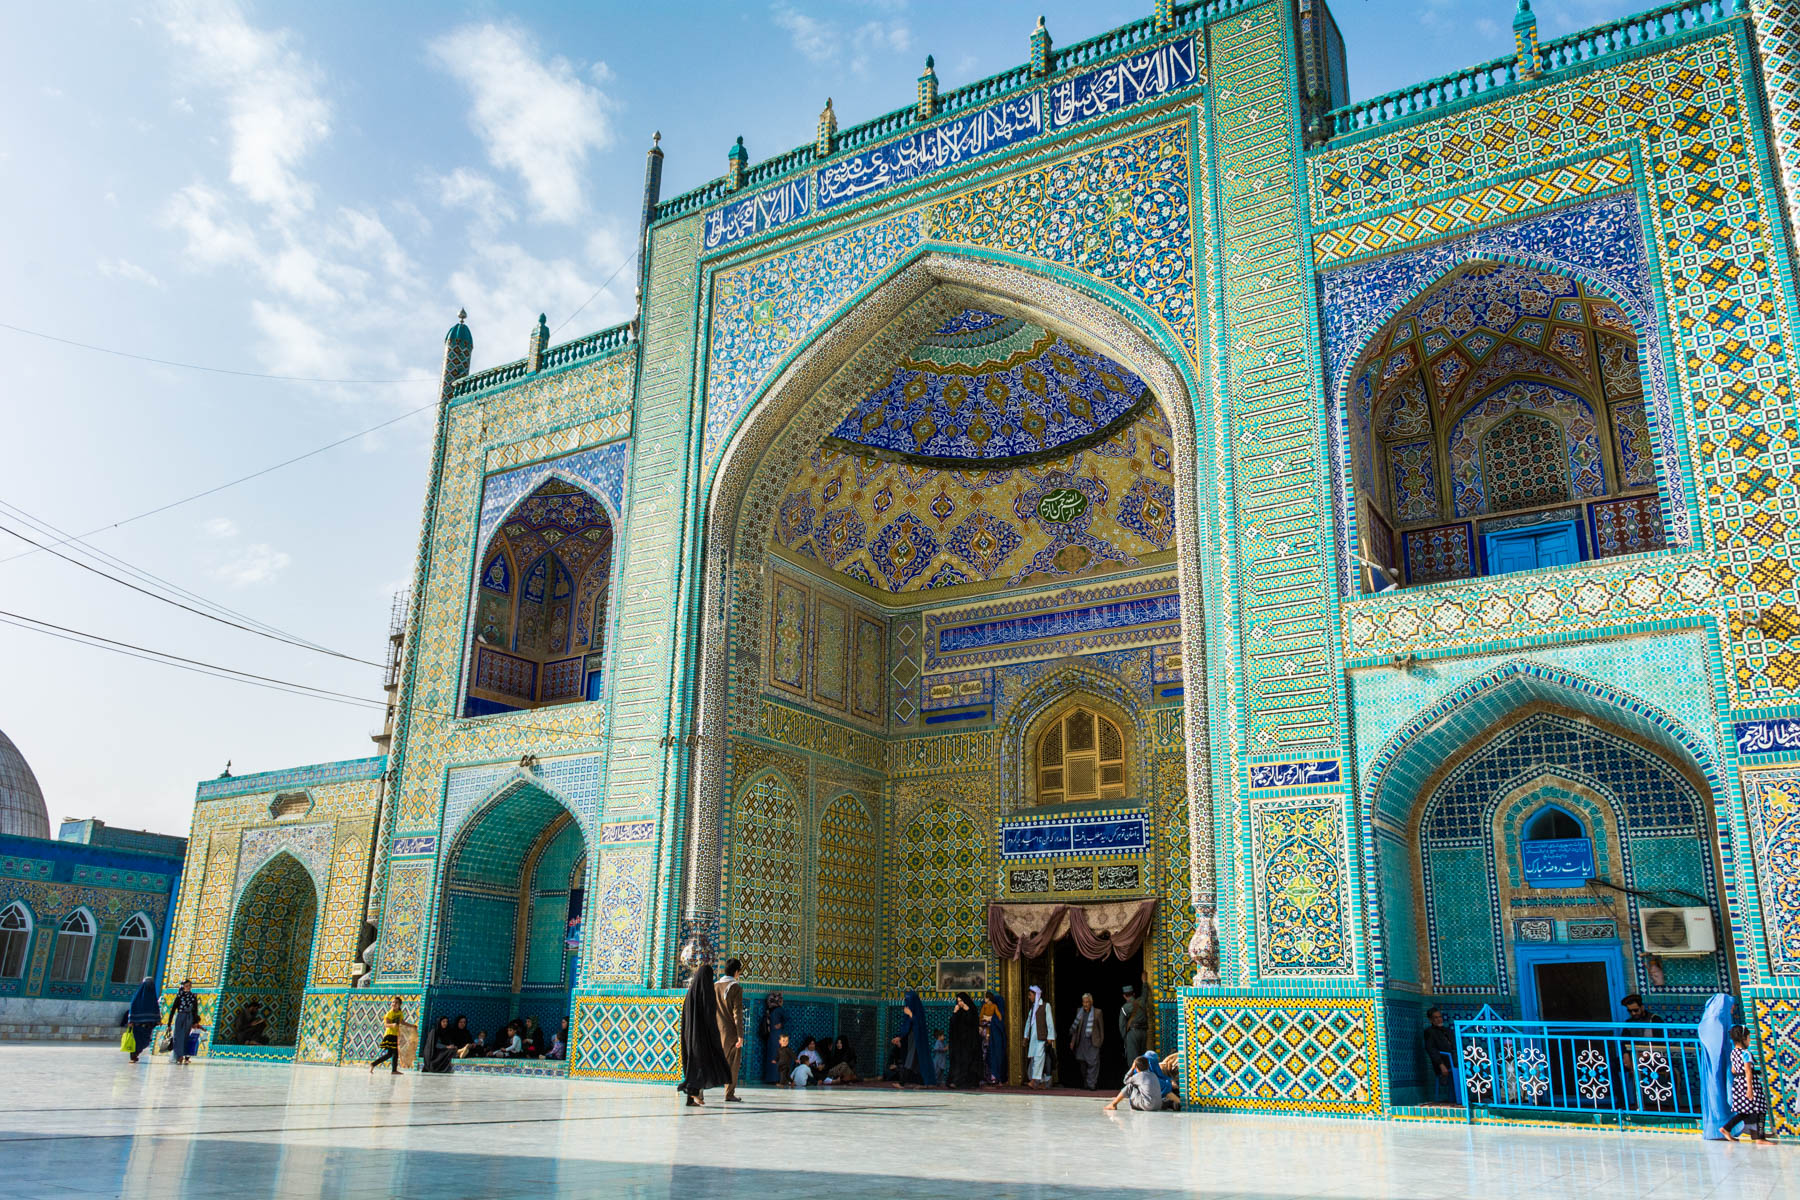 Photos of Mazar-i-Sharif, Afghanistan - Entrance to the Blue Mosque at sunset - Lost With Purpose